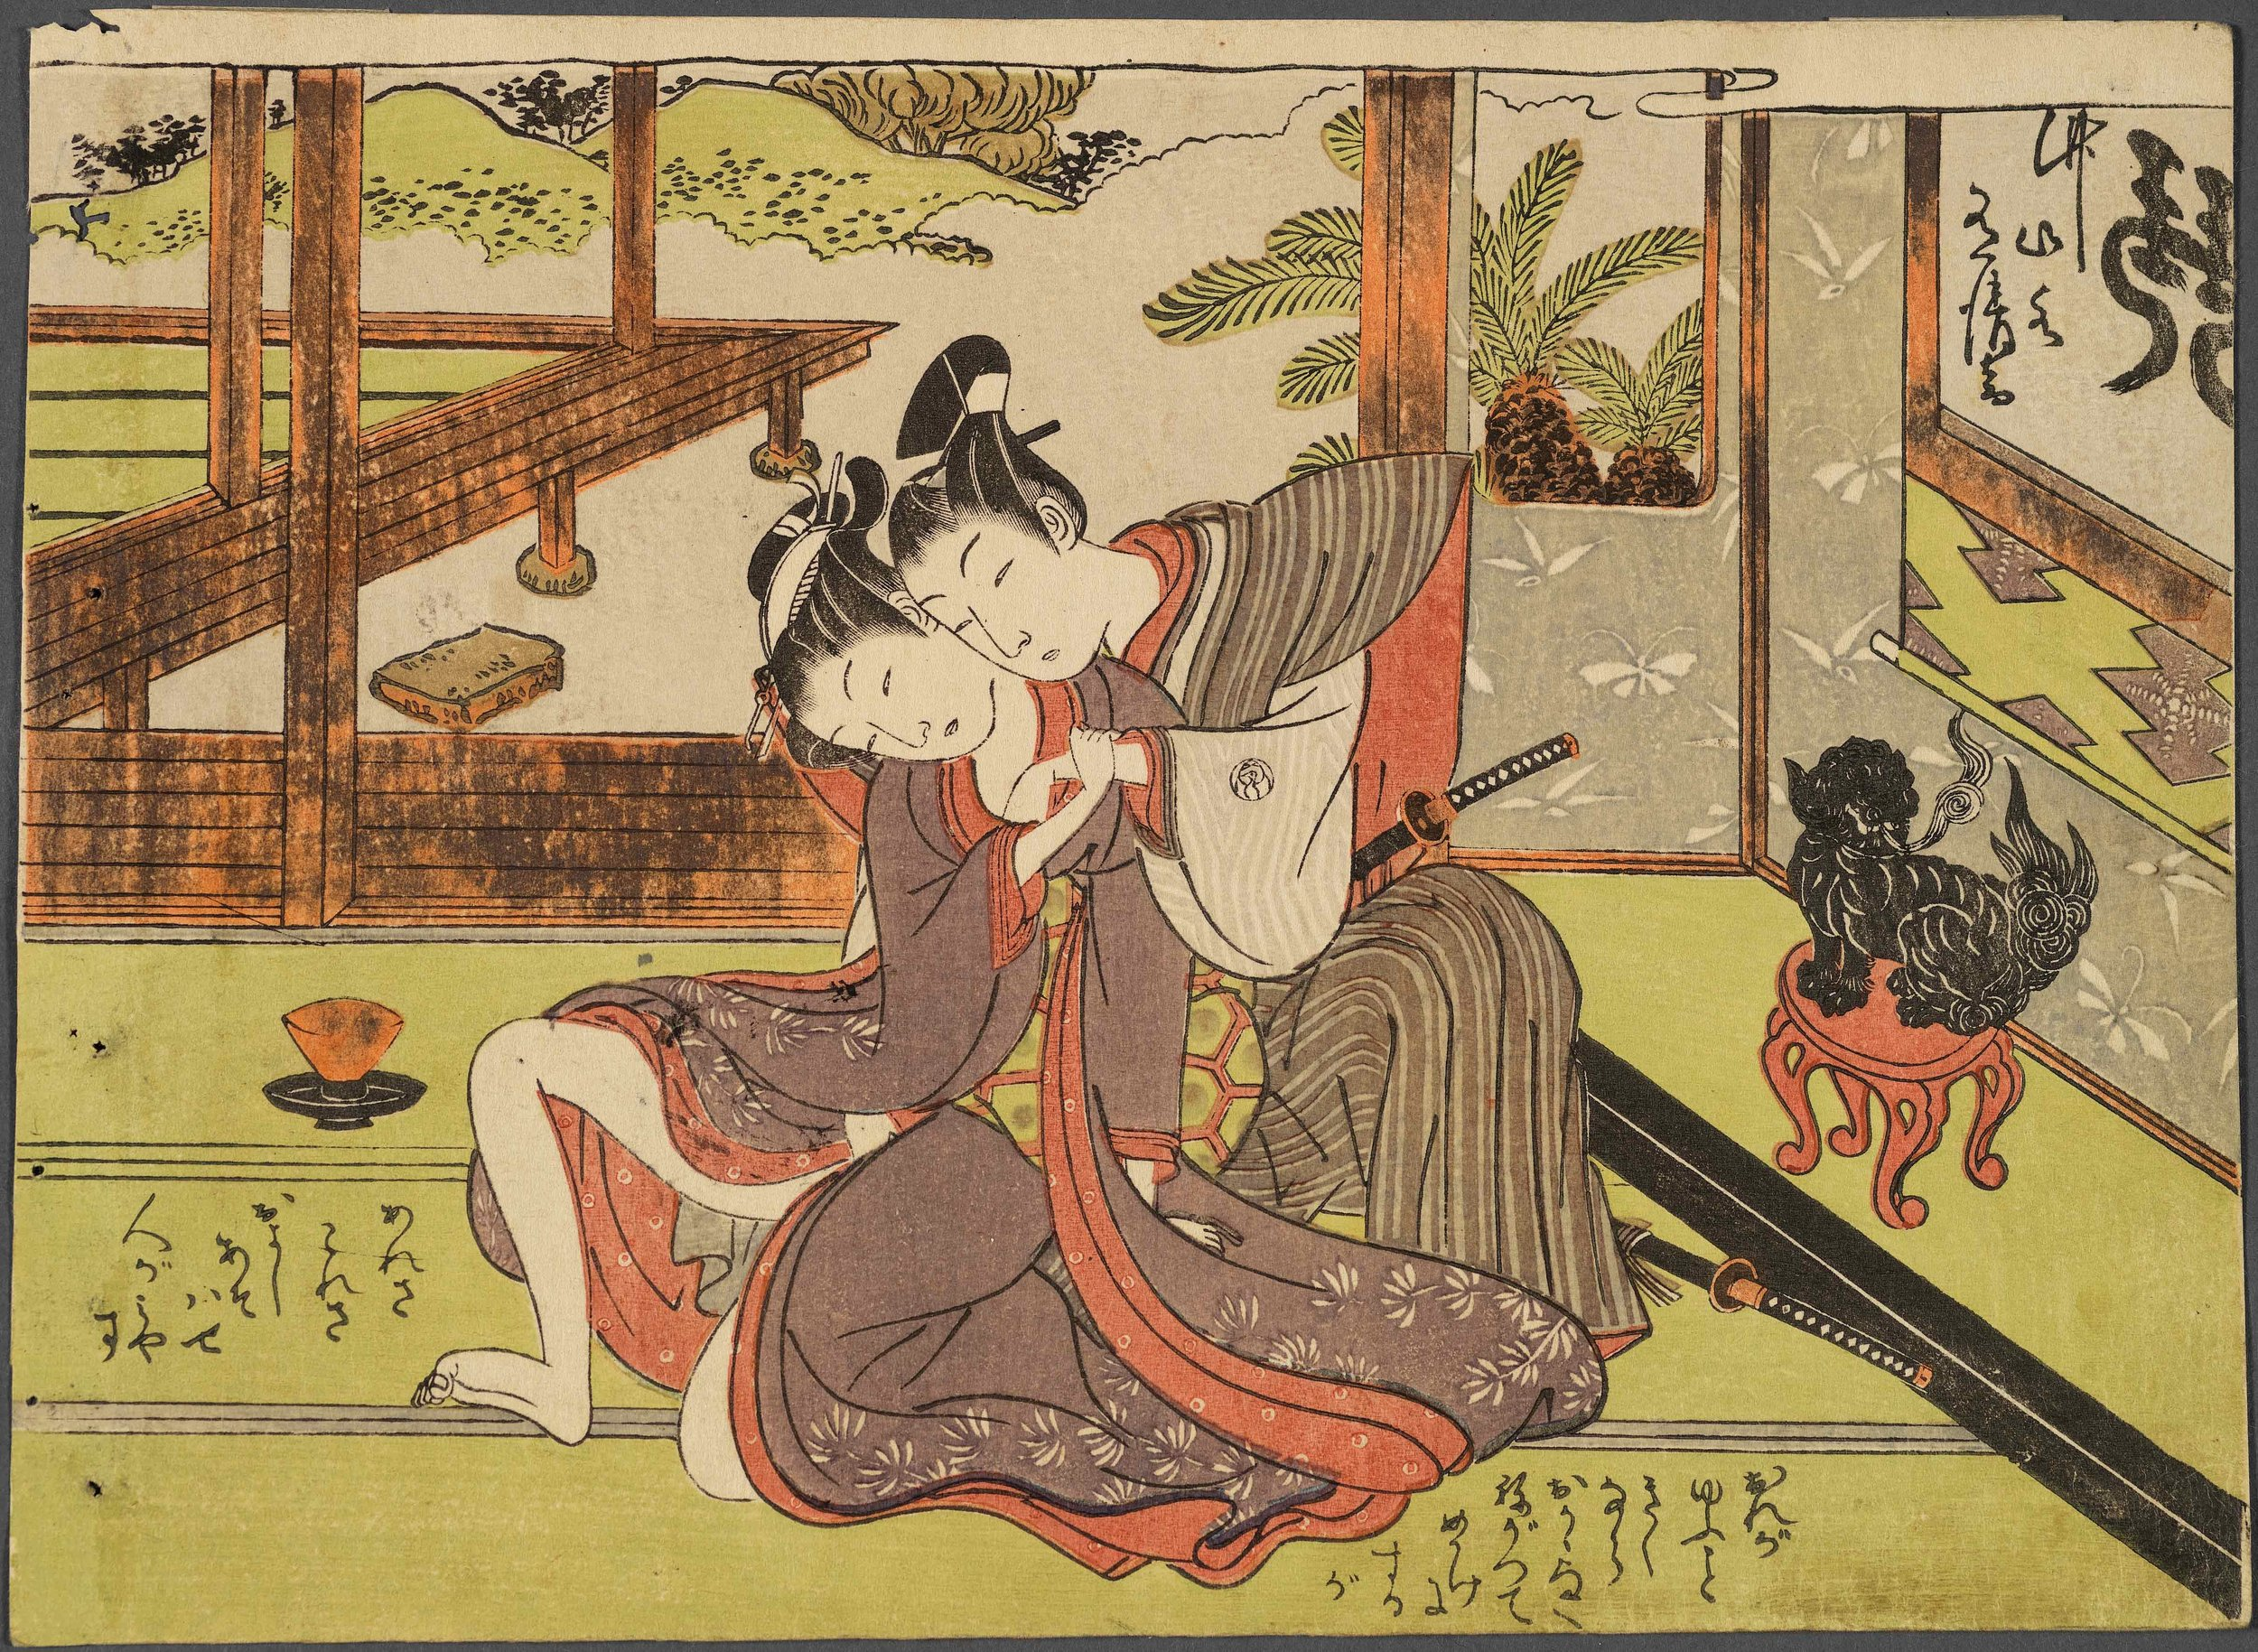 Isoda Koryusai (1735-1790),  Samurai Wakashu and Maid , Second half of the 18th century. Color woodblock print. Royal Ontario Museum, 973x85.123. Courtesy of the Royal Ontario Museum, ©ROM